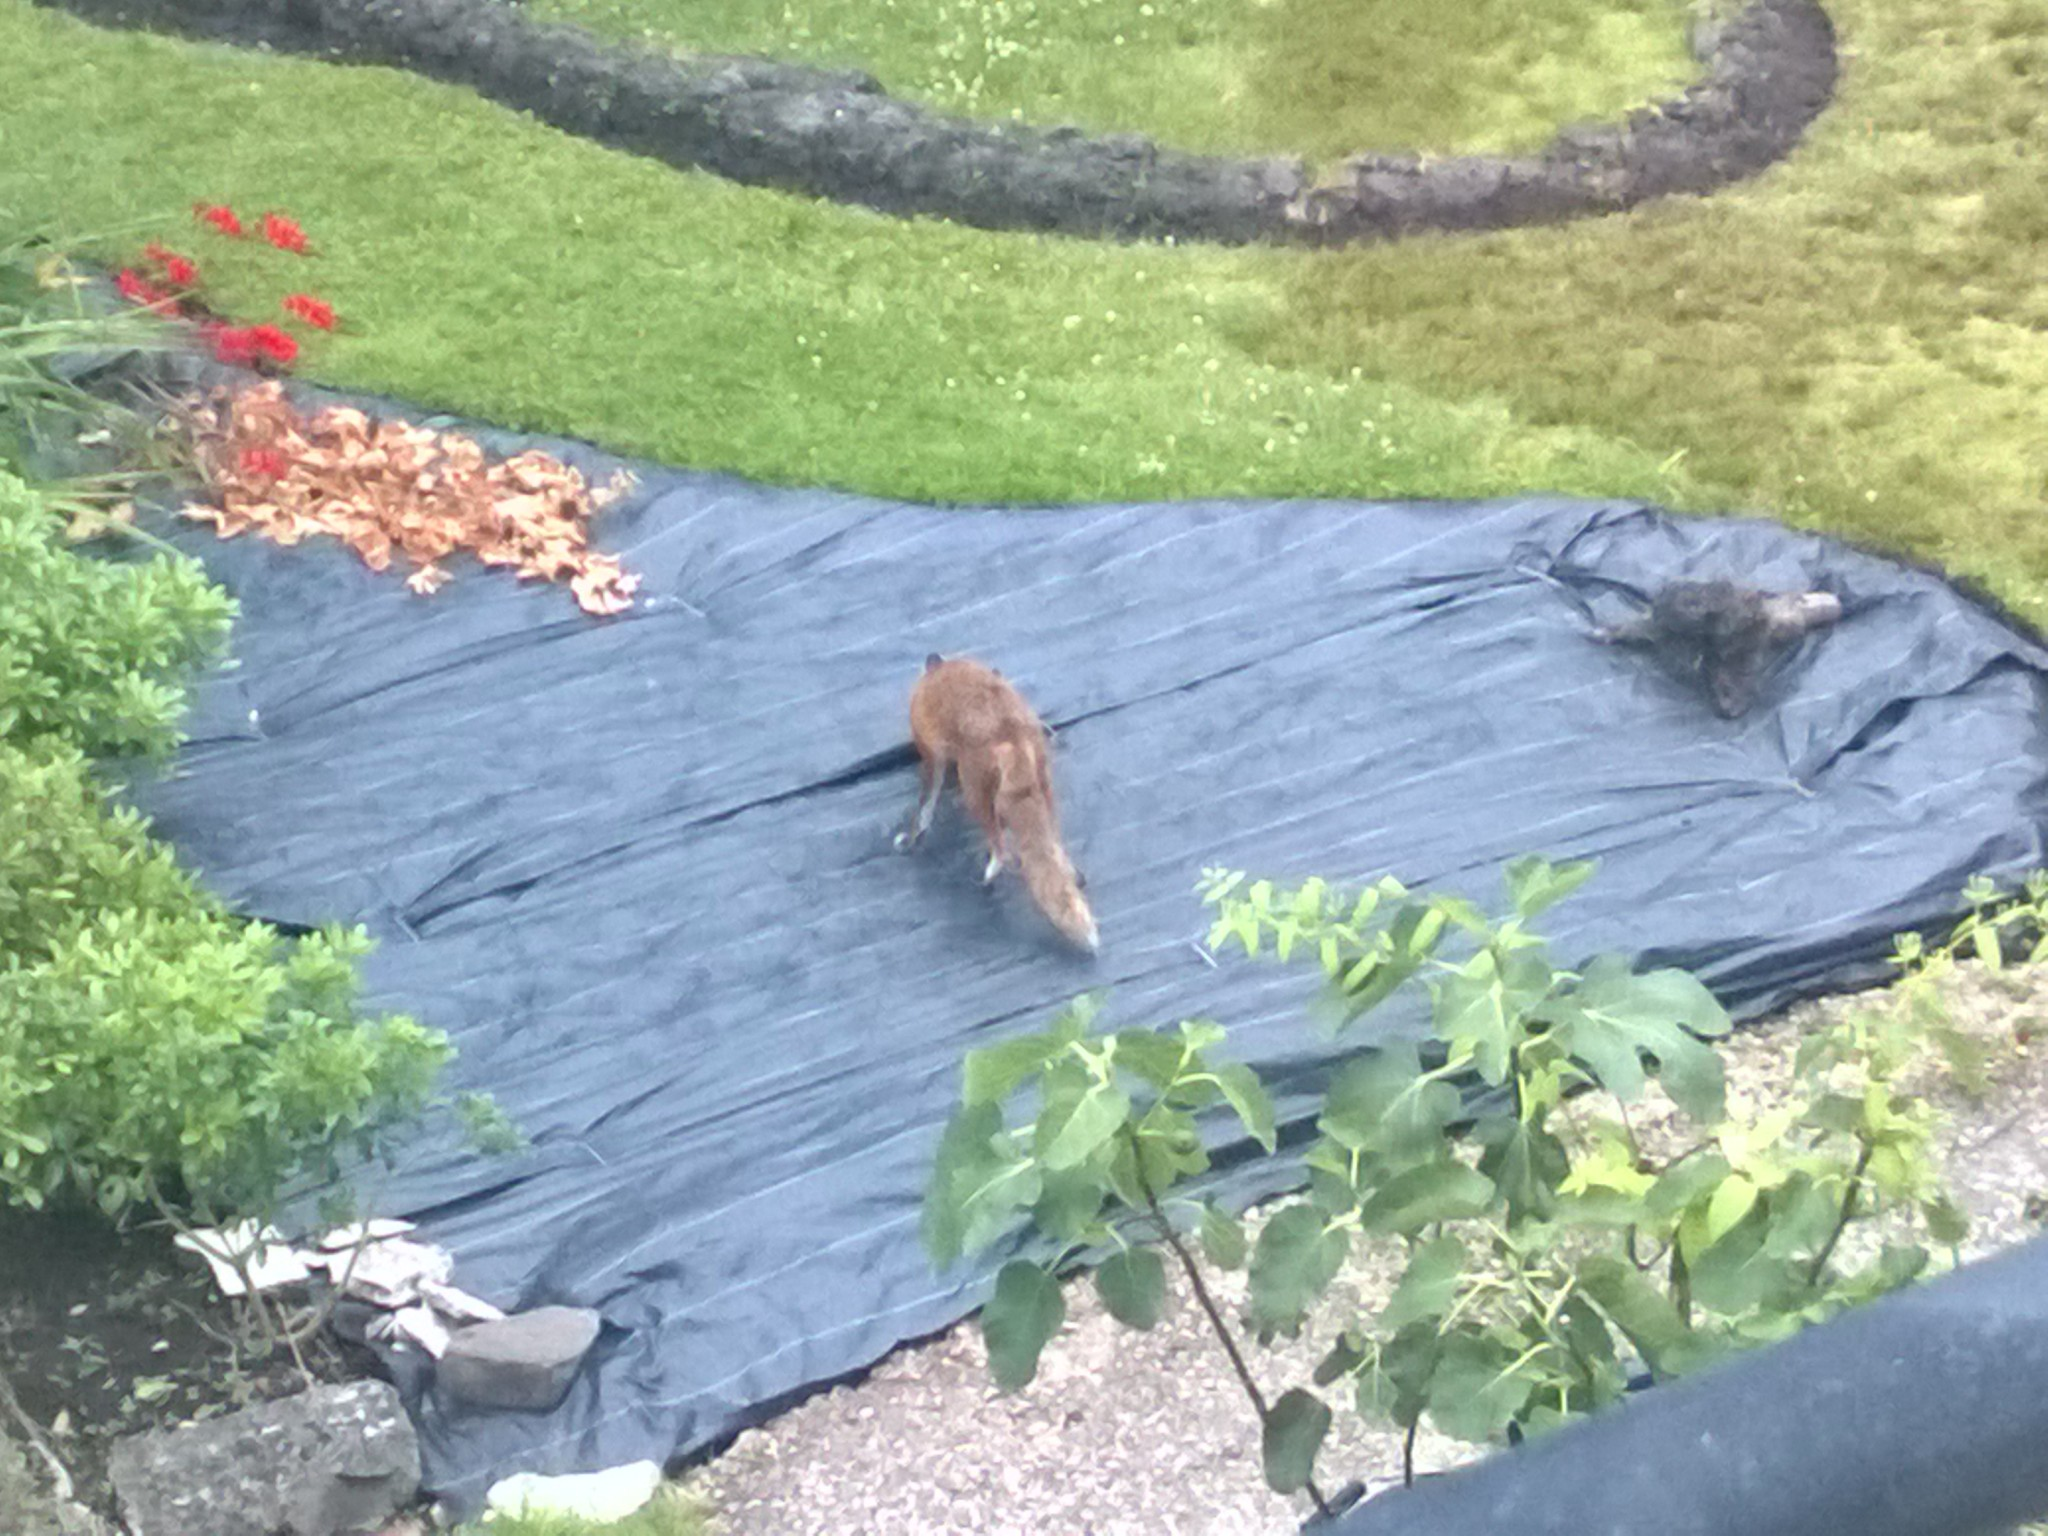 Fox searching for food